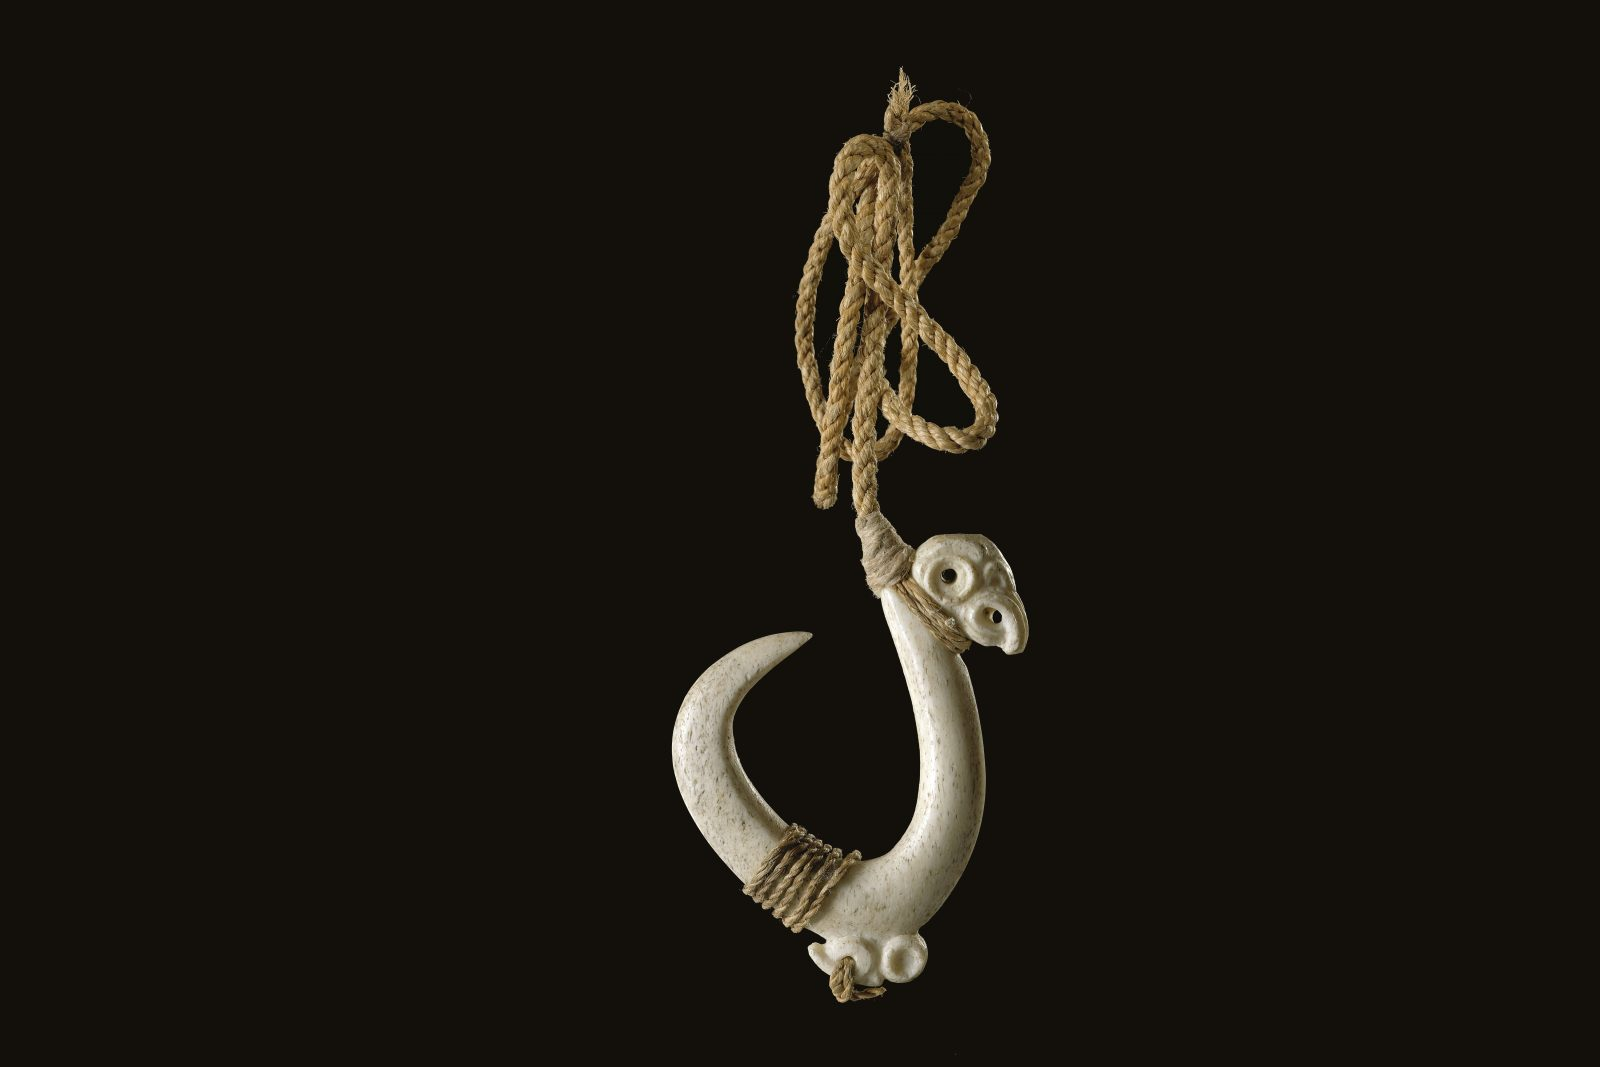 Traditional Maori hooks, or matau, functioned by rotating and trapping the jaw of the fish rather than by penetrating it in the manner of modern steel hooks. Fishing lines were attached to the hook with a short snood tied to a groove on the shank of the matau. This groove was at right angles to the direction of the point and caused the hook to rotate away from the direction of the point when under tension, trapping the fish's jawbone inside the narrow gap. Because matau did not function by piercing the fish, rods were not required to provide leverage to set the hook, and the hooks did not require a reversed barb. (80 mm length)